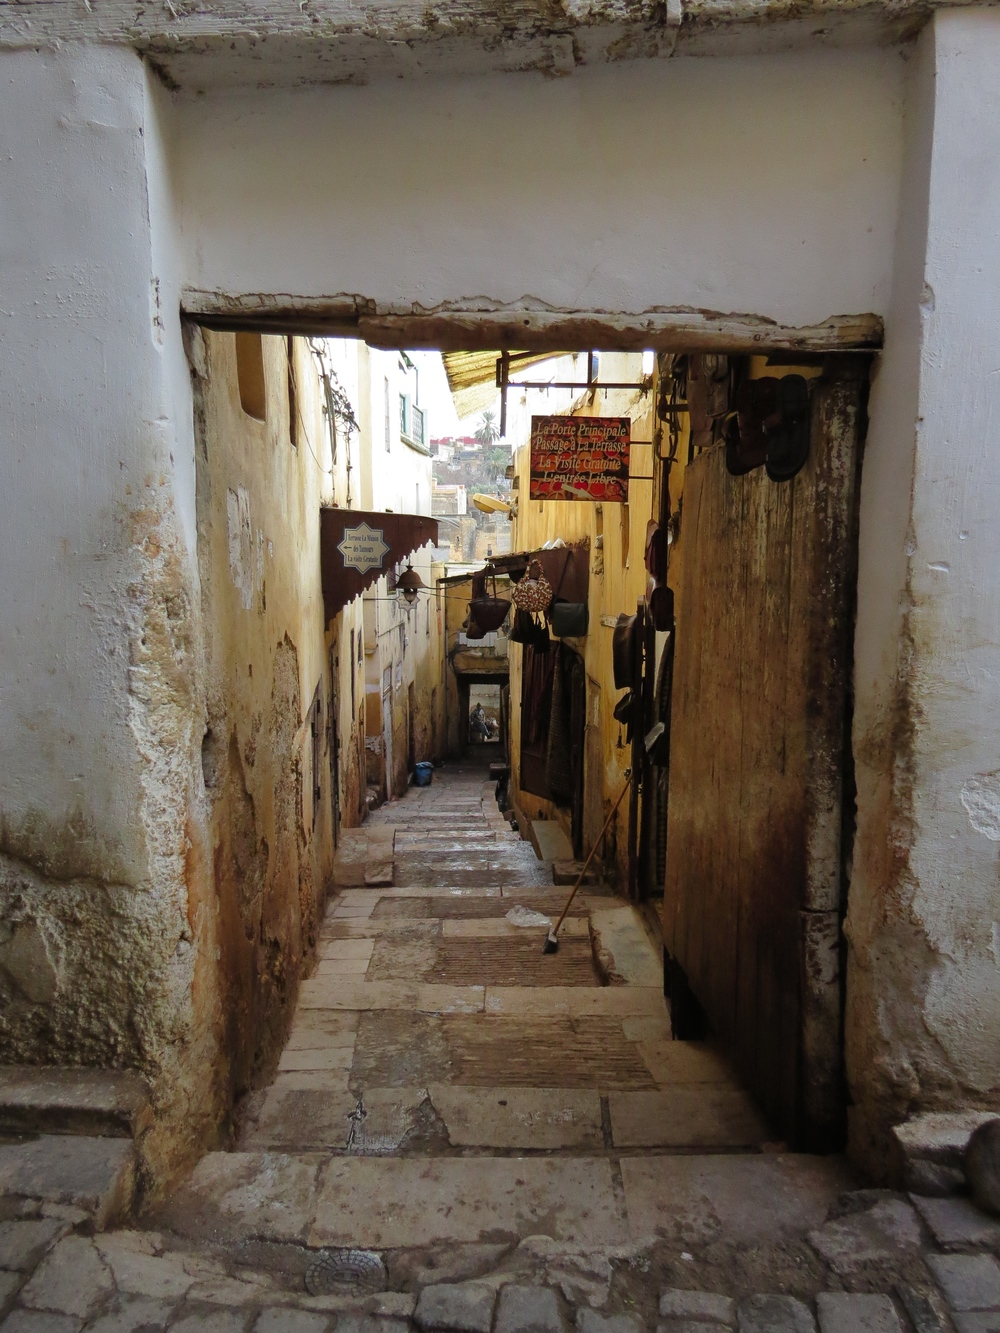 The alleys of the old medina